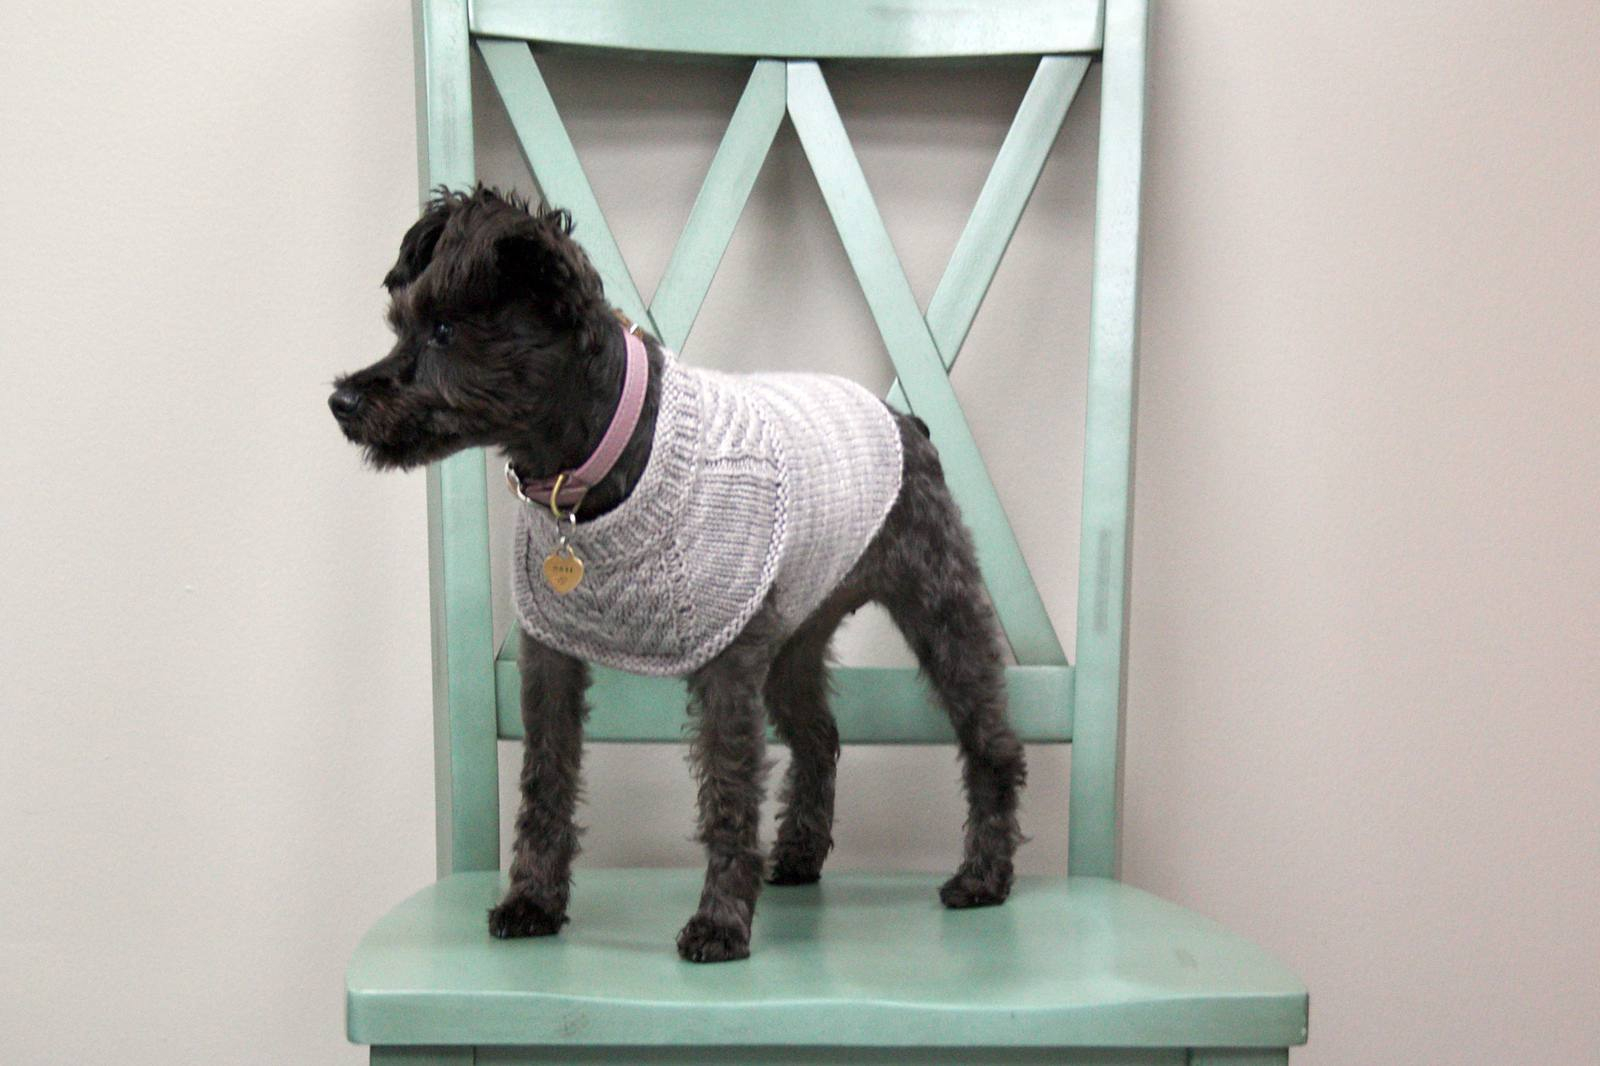 Dog Sweater Knitting Patterns 12 Dog Sweaters And Other Knitting Patterns For Pups